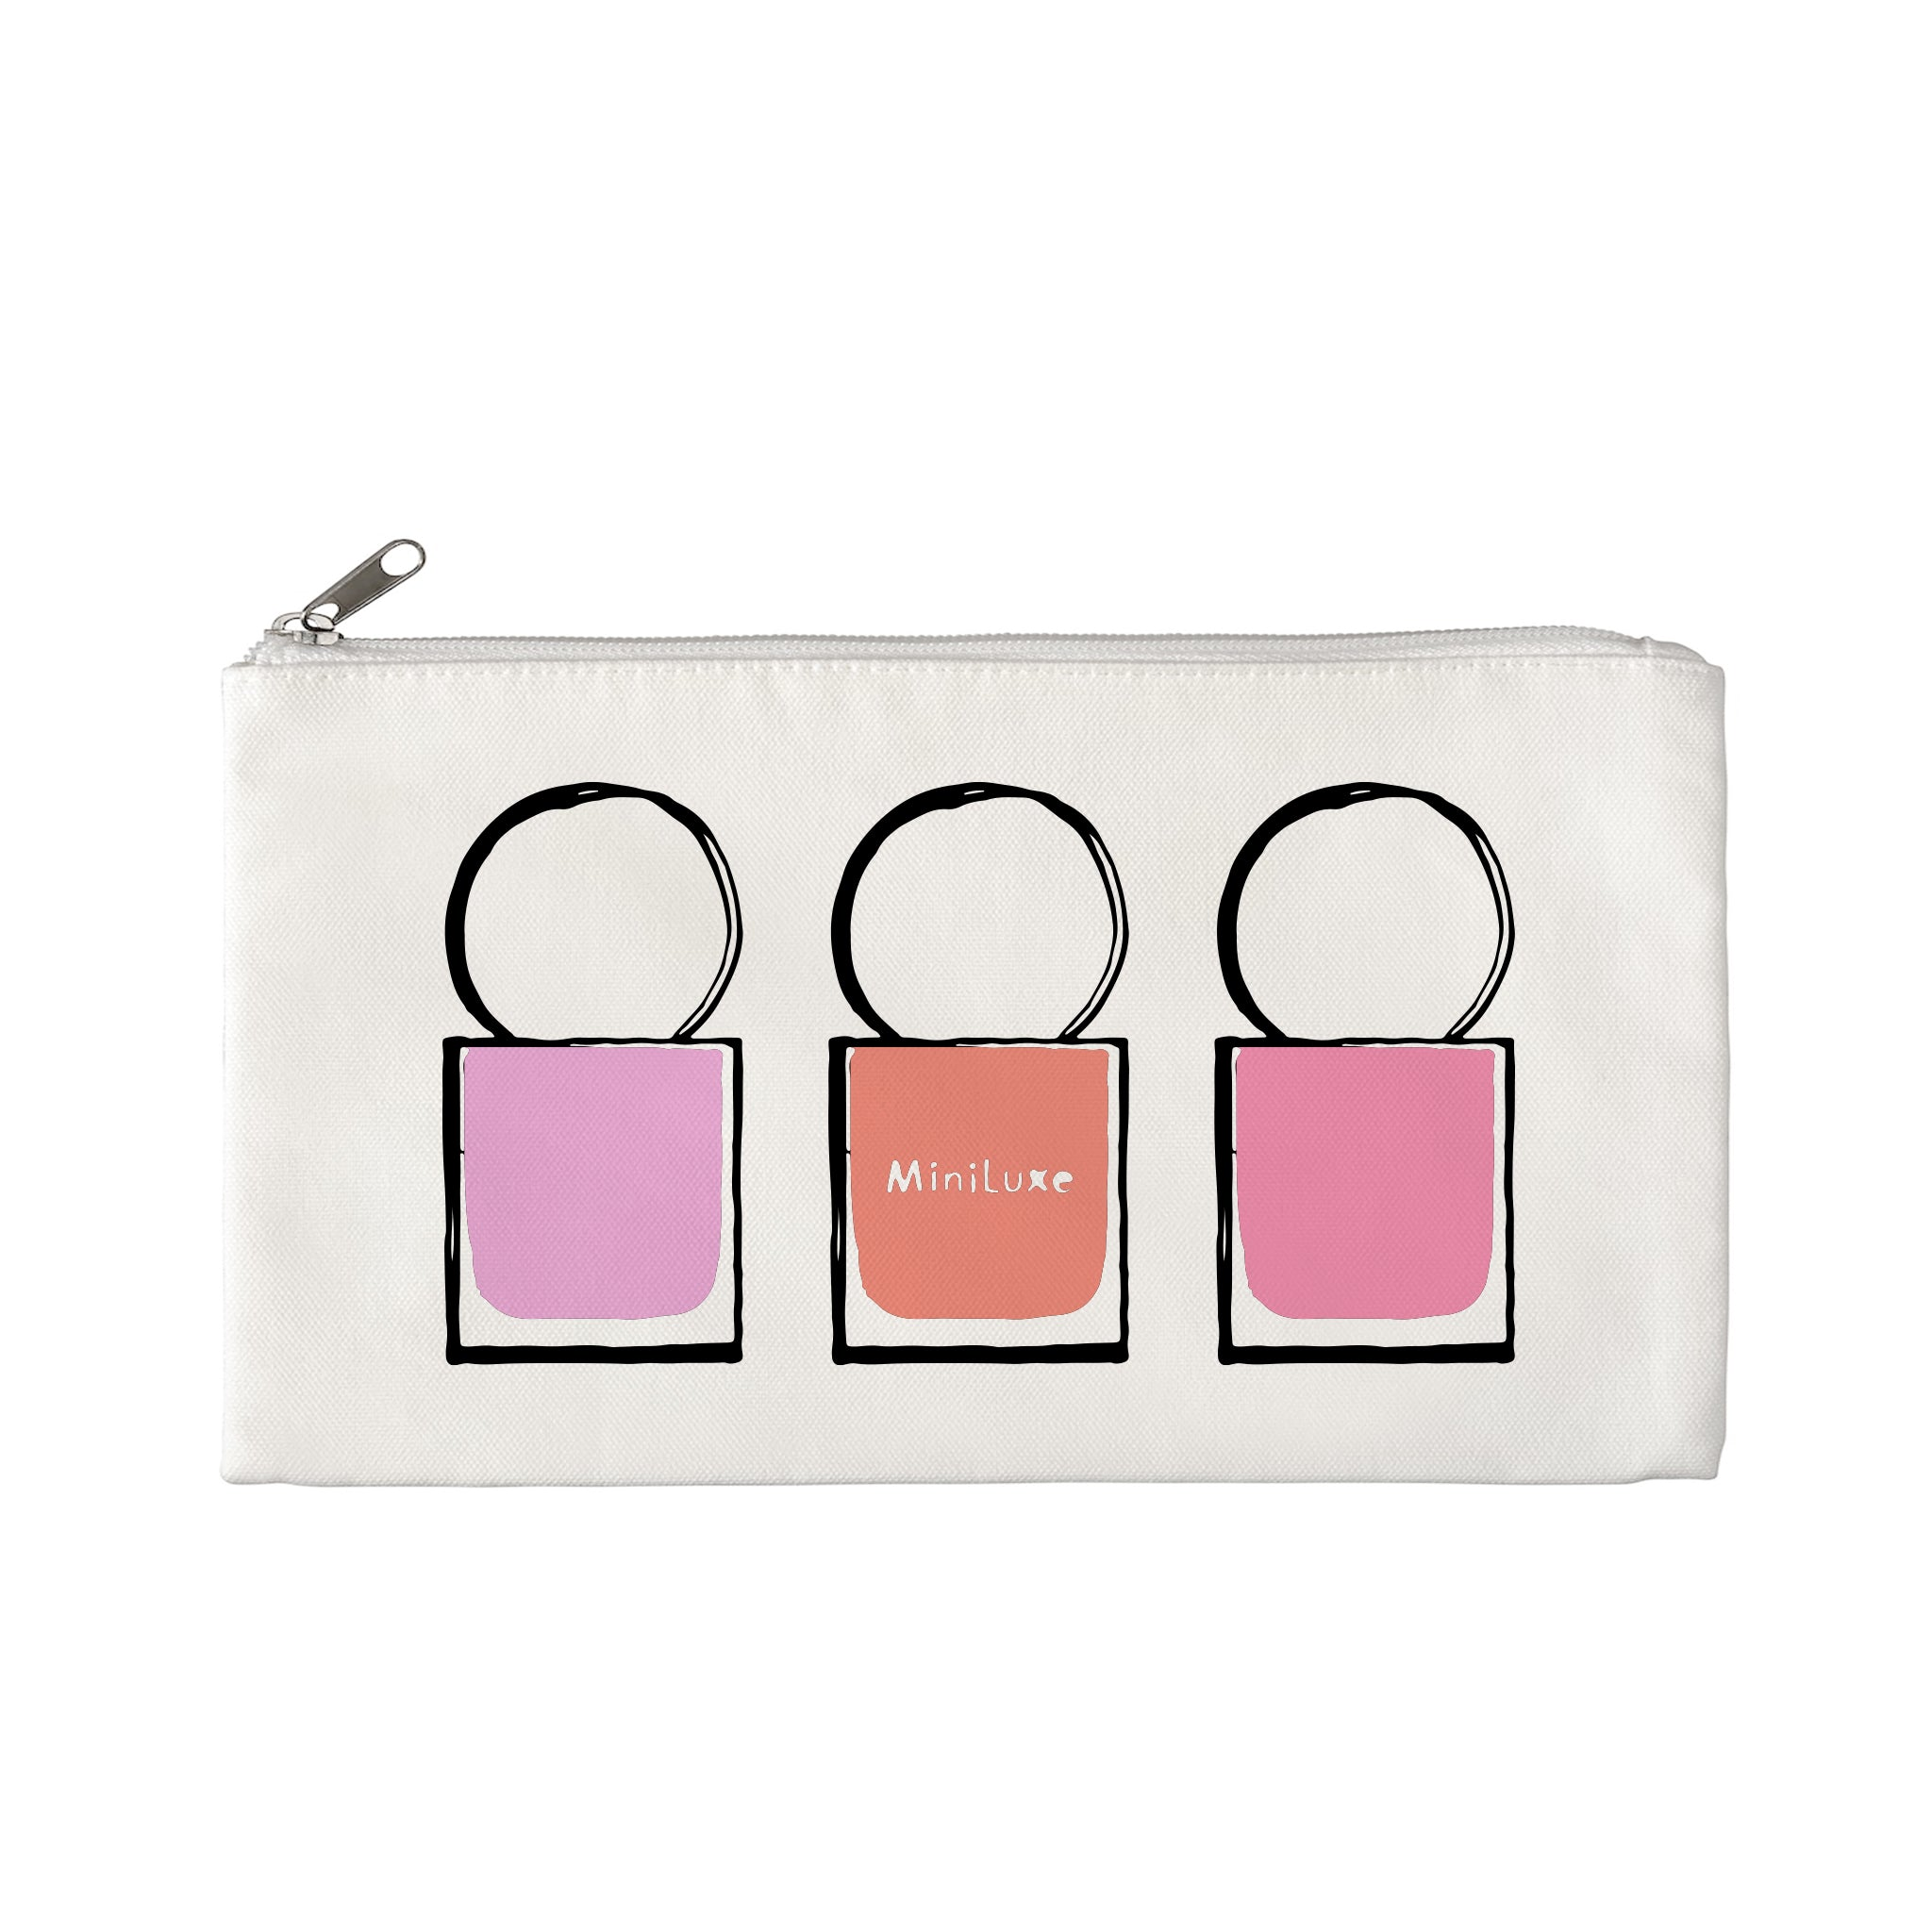 MiniLuxe Canvas Zip Bag